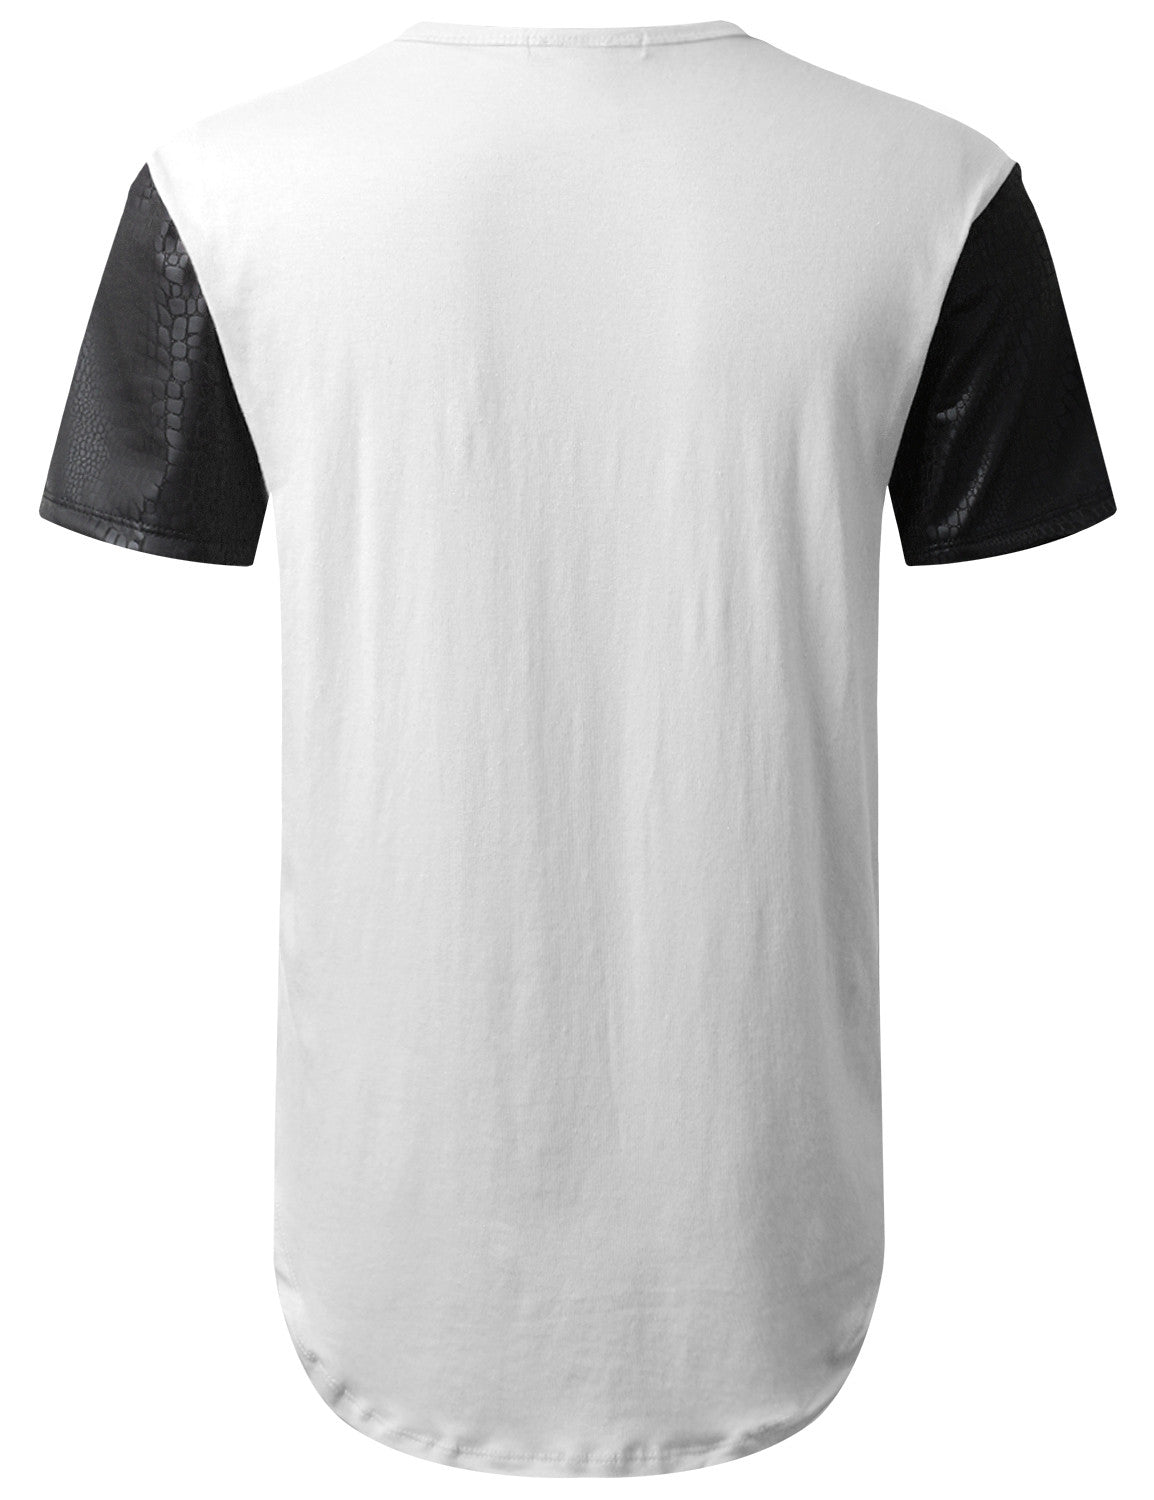 WHITE PU Sleeves Pocket Longline T-shirt - URBANCREWS